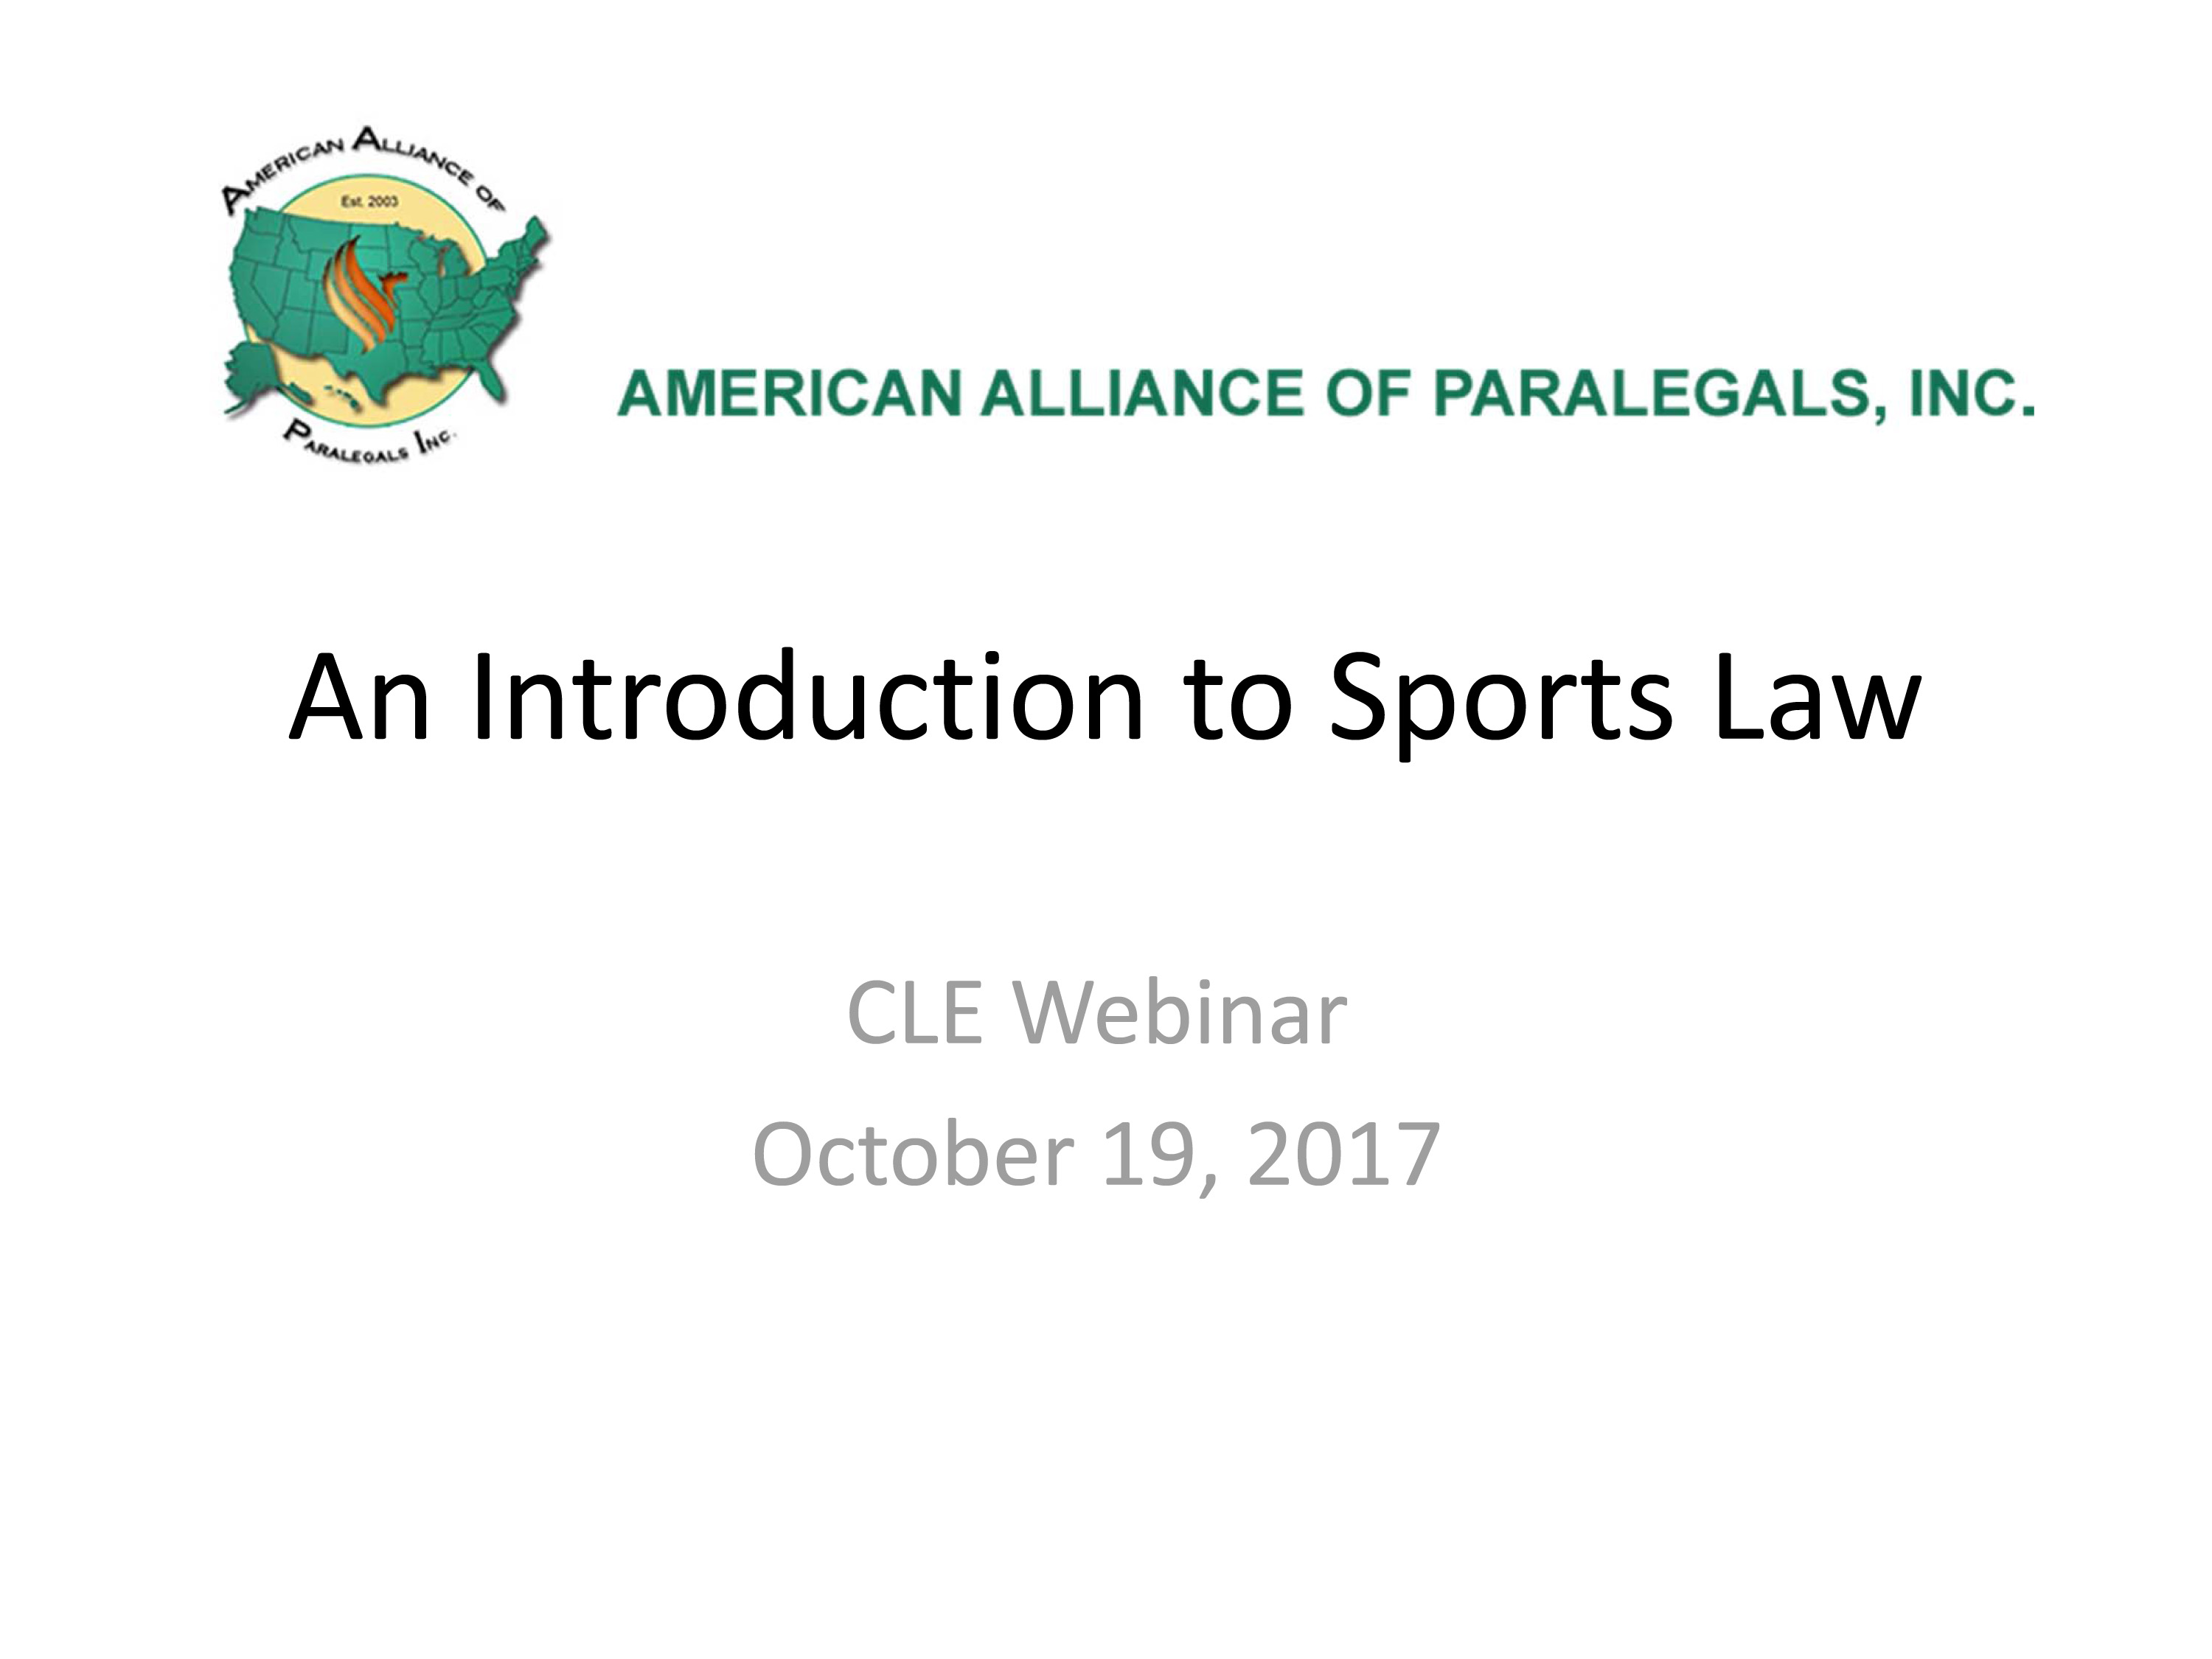 Introduction to Sports Law - Martin J. Greenberg - Sports Attorney